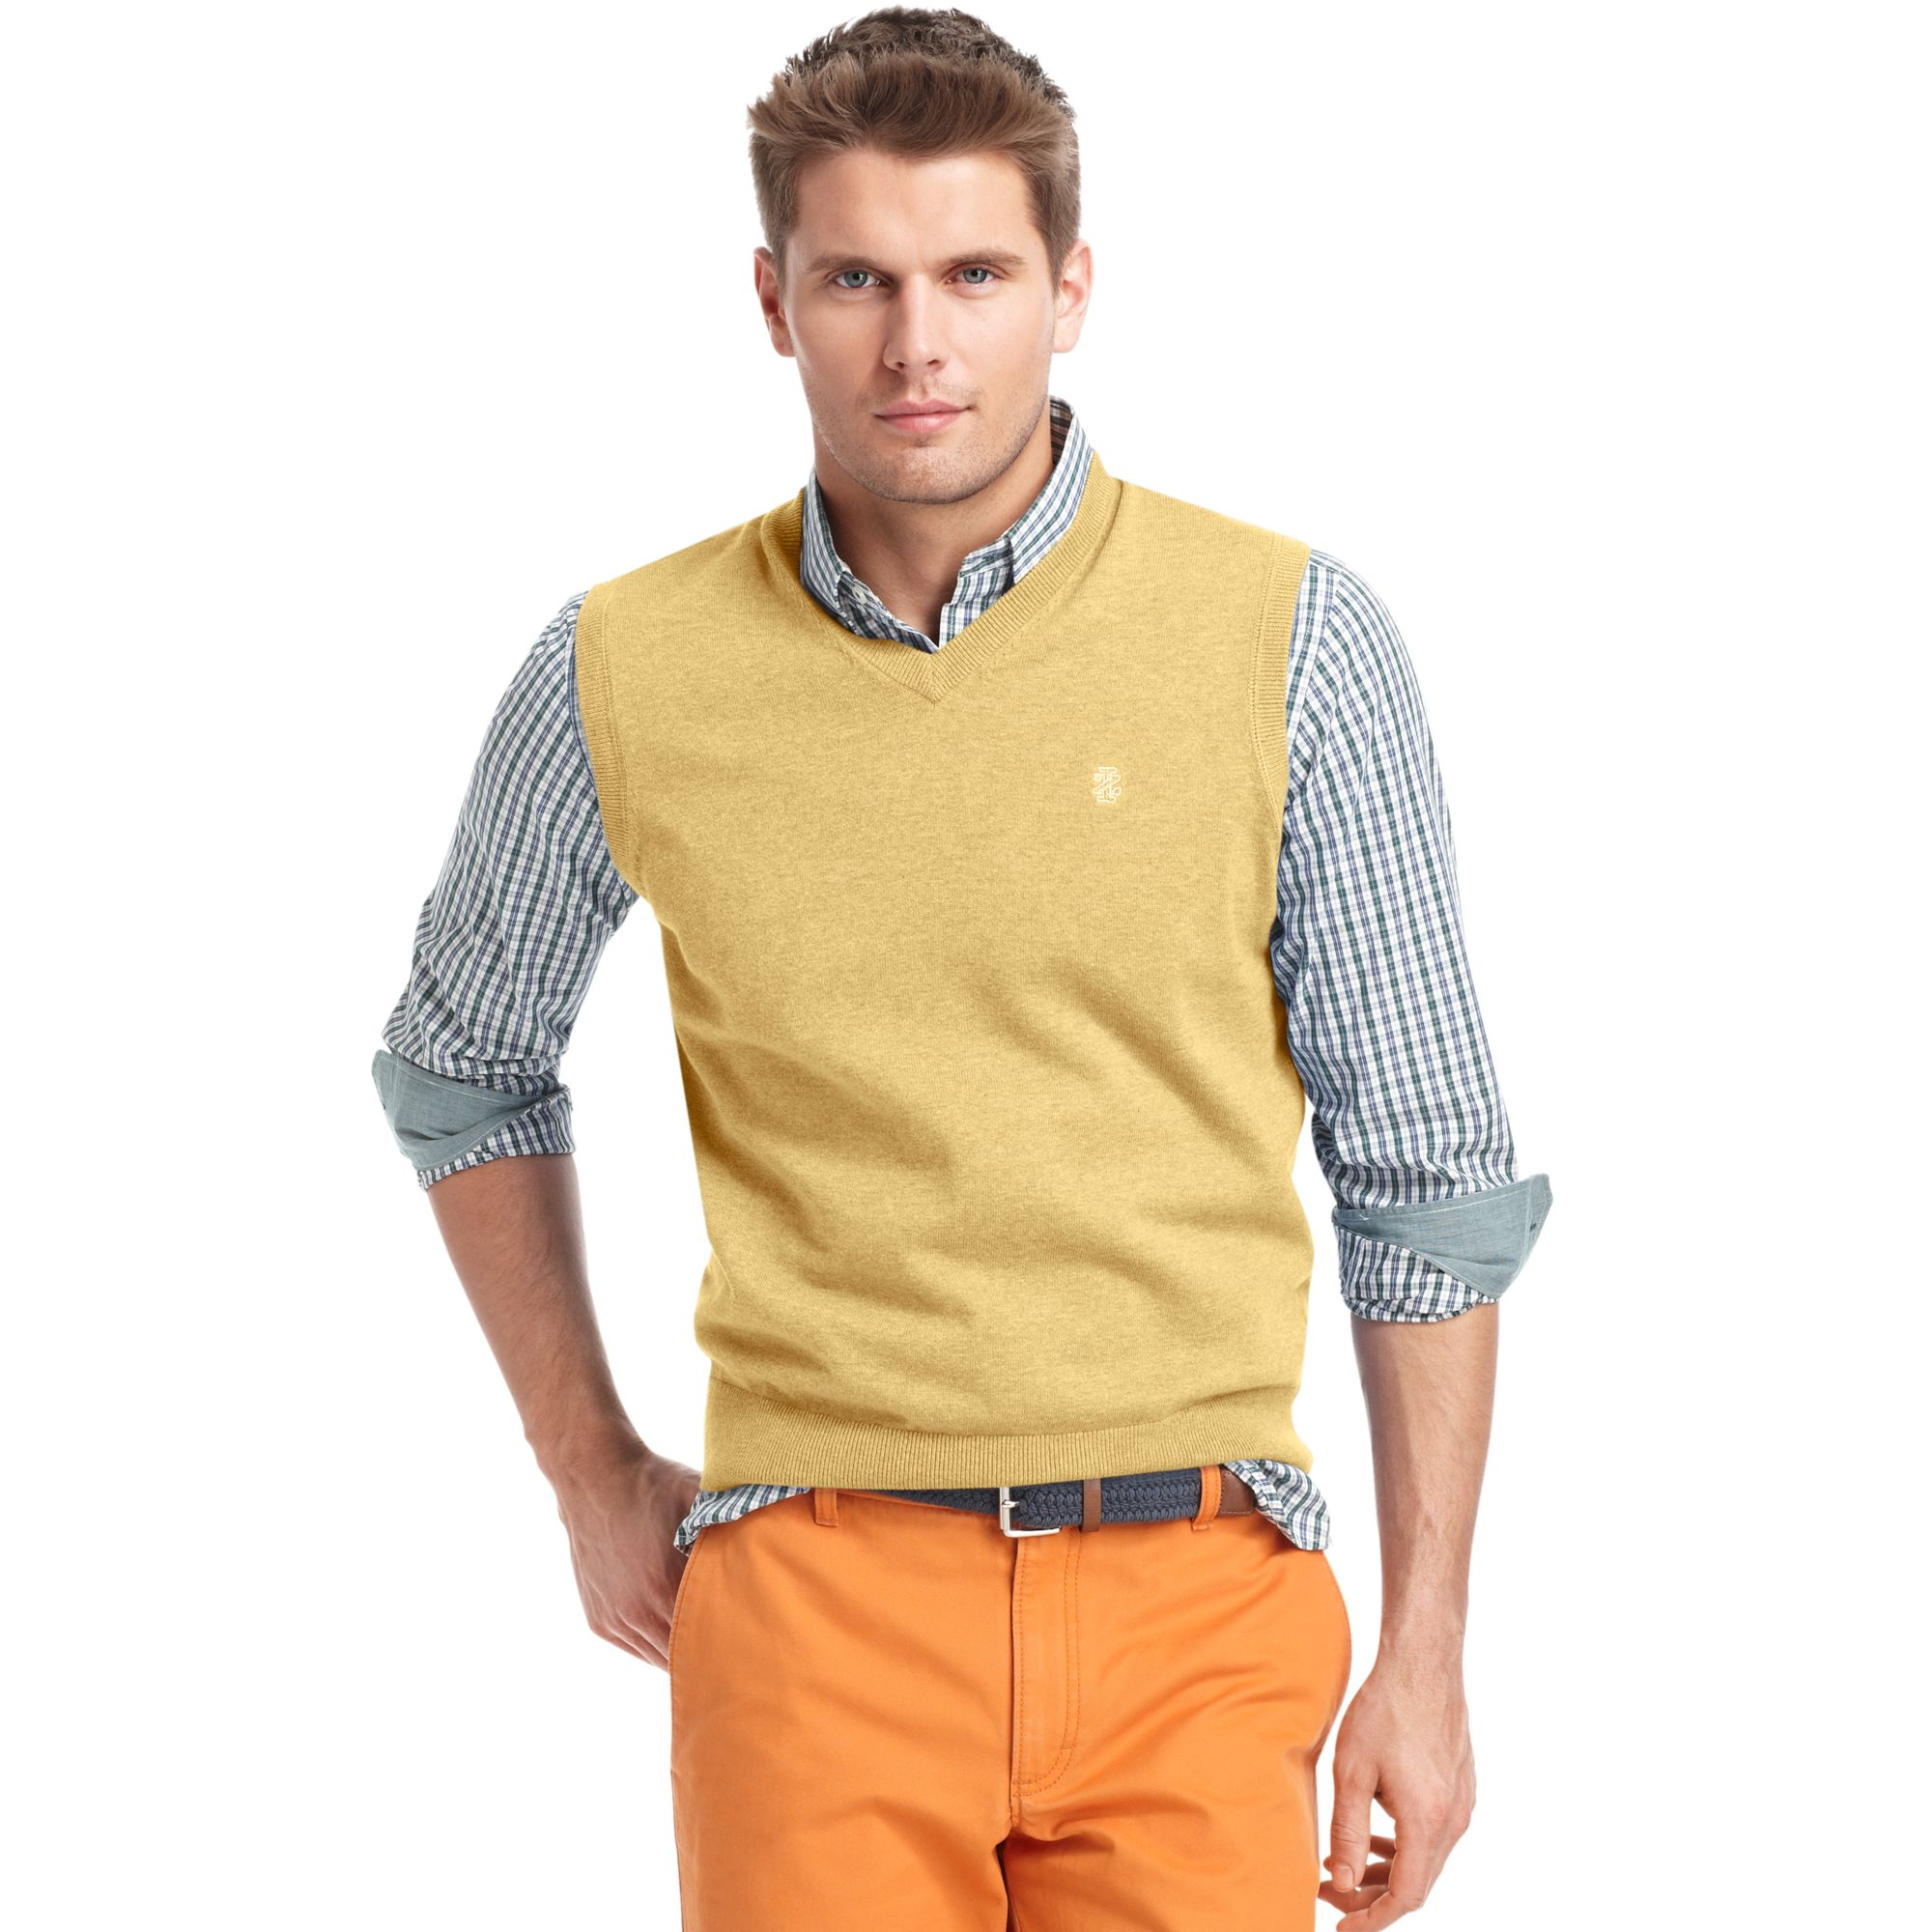 Izod Izod Sweater Vest V Neck Essential Fine Gauge Light Weight ...